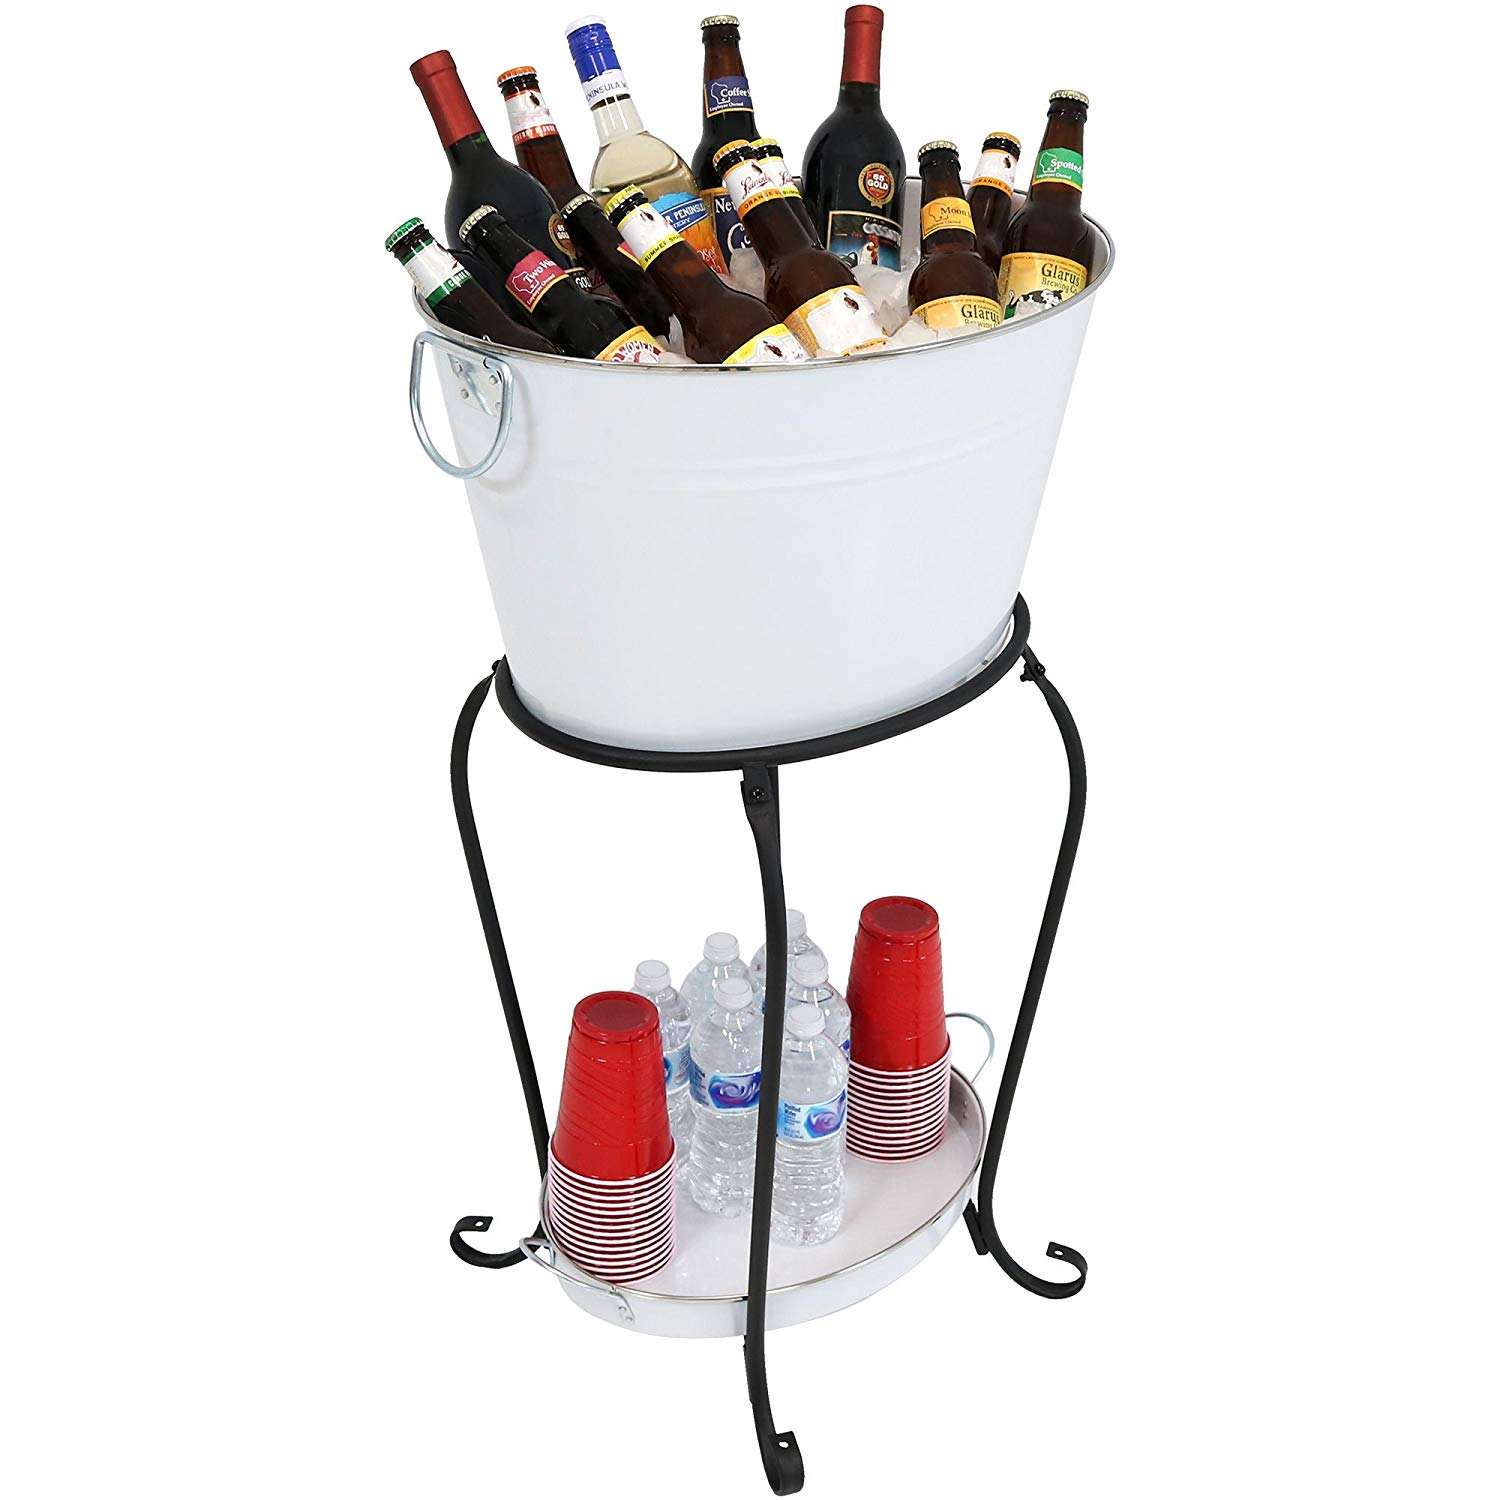 White Finish Beverage beer wine Holder with Stand and Tray for Parties